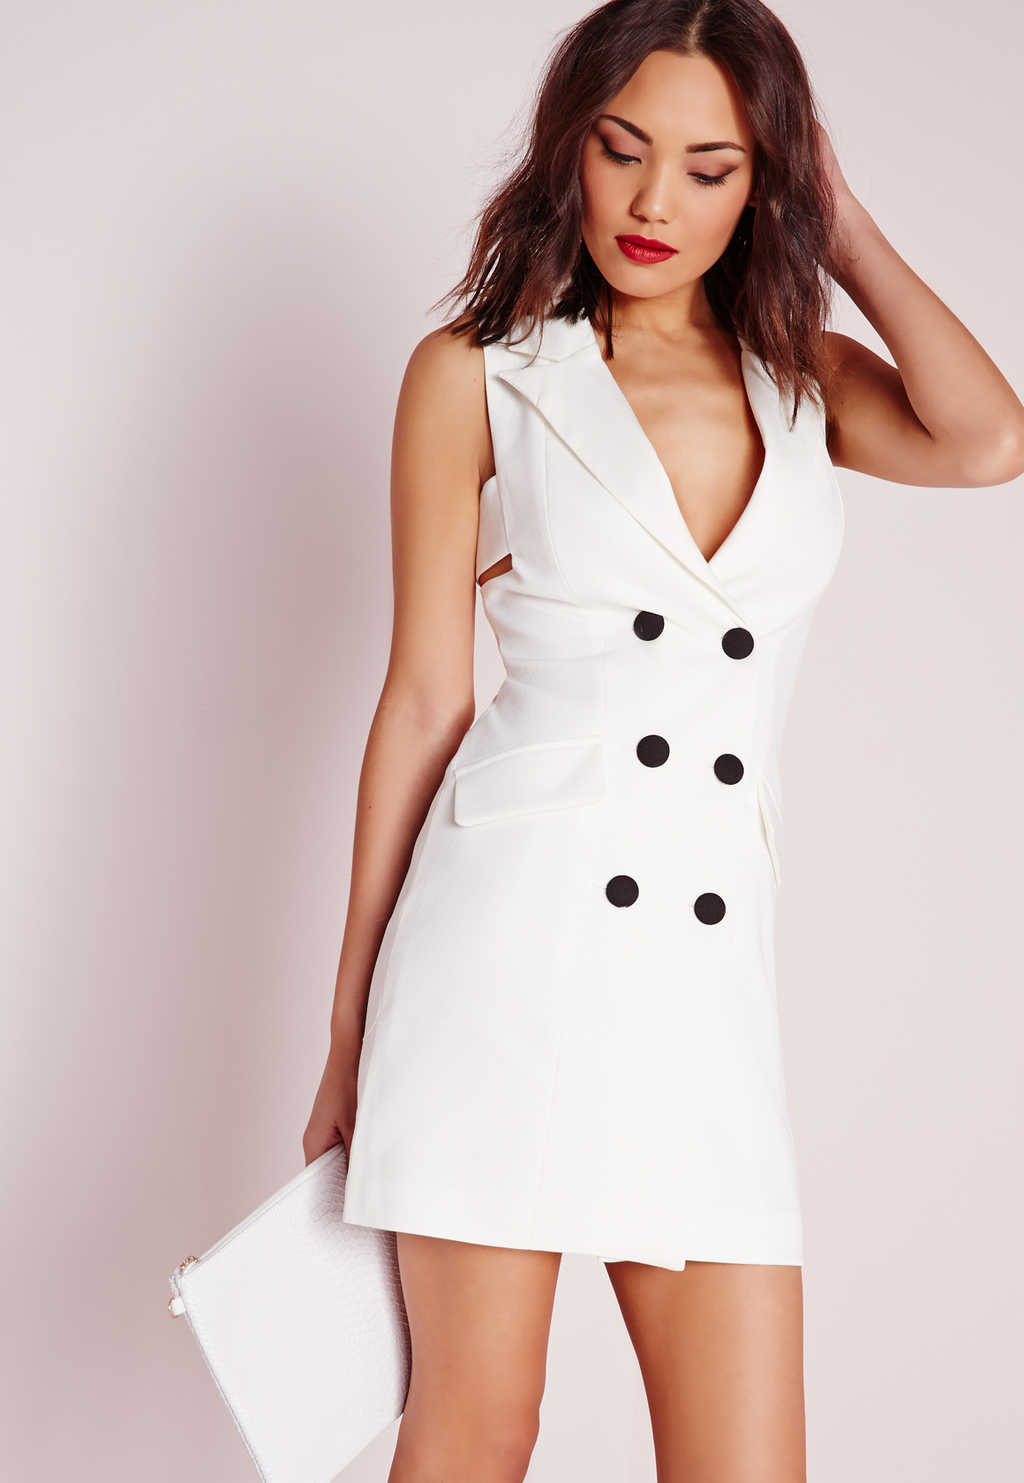 Crepe Sleeveless Blazer Dress White, White - style: shift; length: mini; neckline: v-neck; fit: tailored/fitted; pattern: plain; sleeve style: sleeveless; predominant colour: white; occasions: evening; fibres: polyester/polyamide - 100%; hip detail: subtle/flattering hip detail; sleeve length: sleeveless; trends: monochrome; texture group: crepes; pattern type: fabric; season: s/s 2016; wardrobe: event